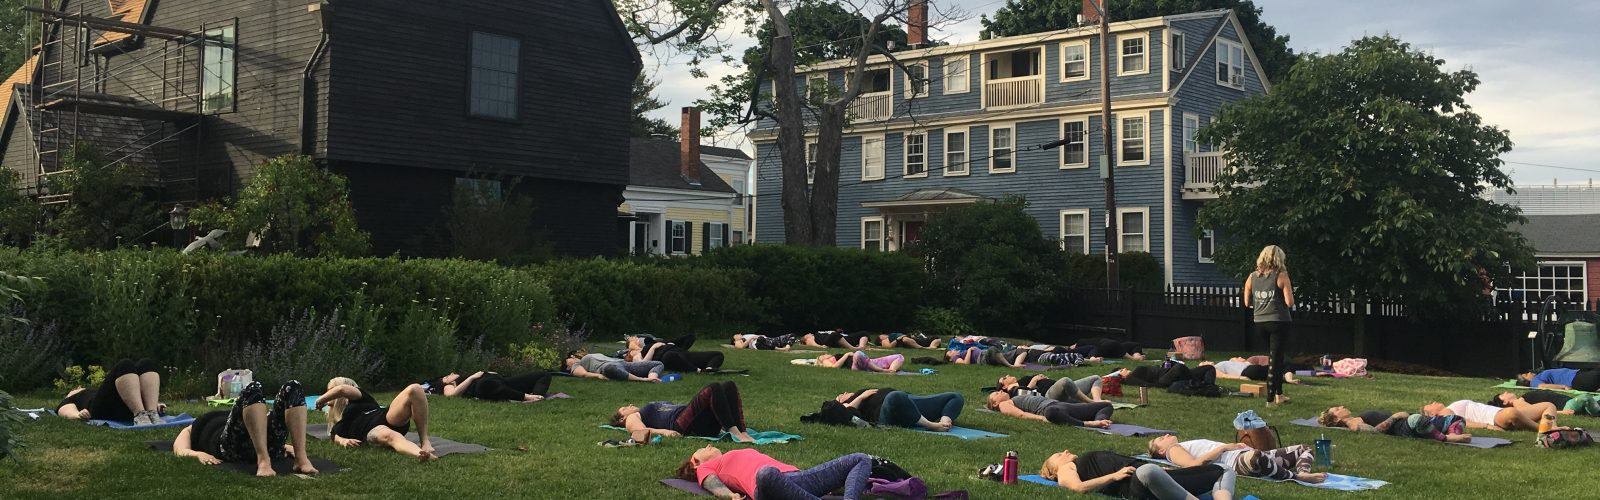 Yoga practice on the Seaside Lawn at The House of the Seven Gables